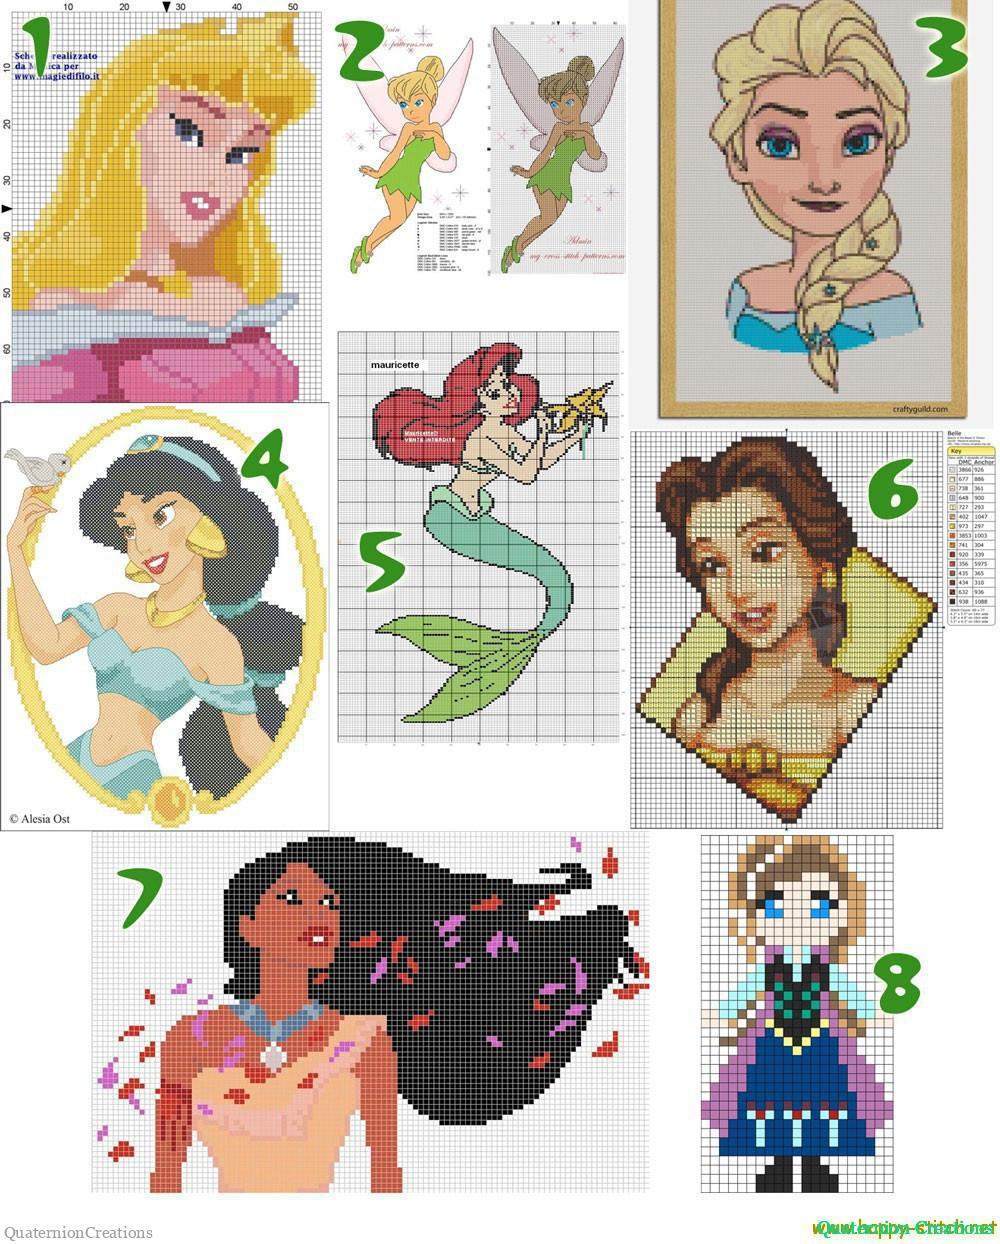 Free cross stitch patterns with Disney princesses